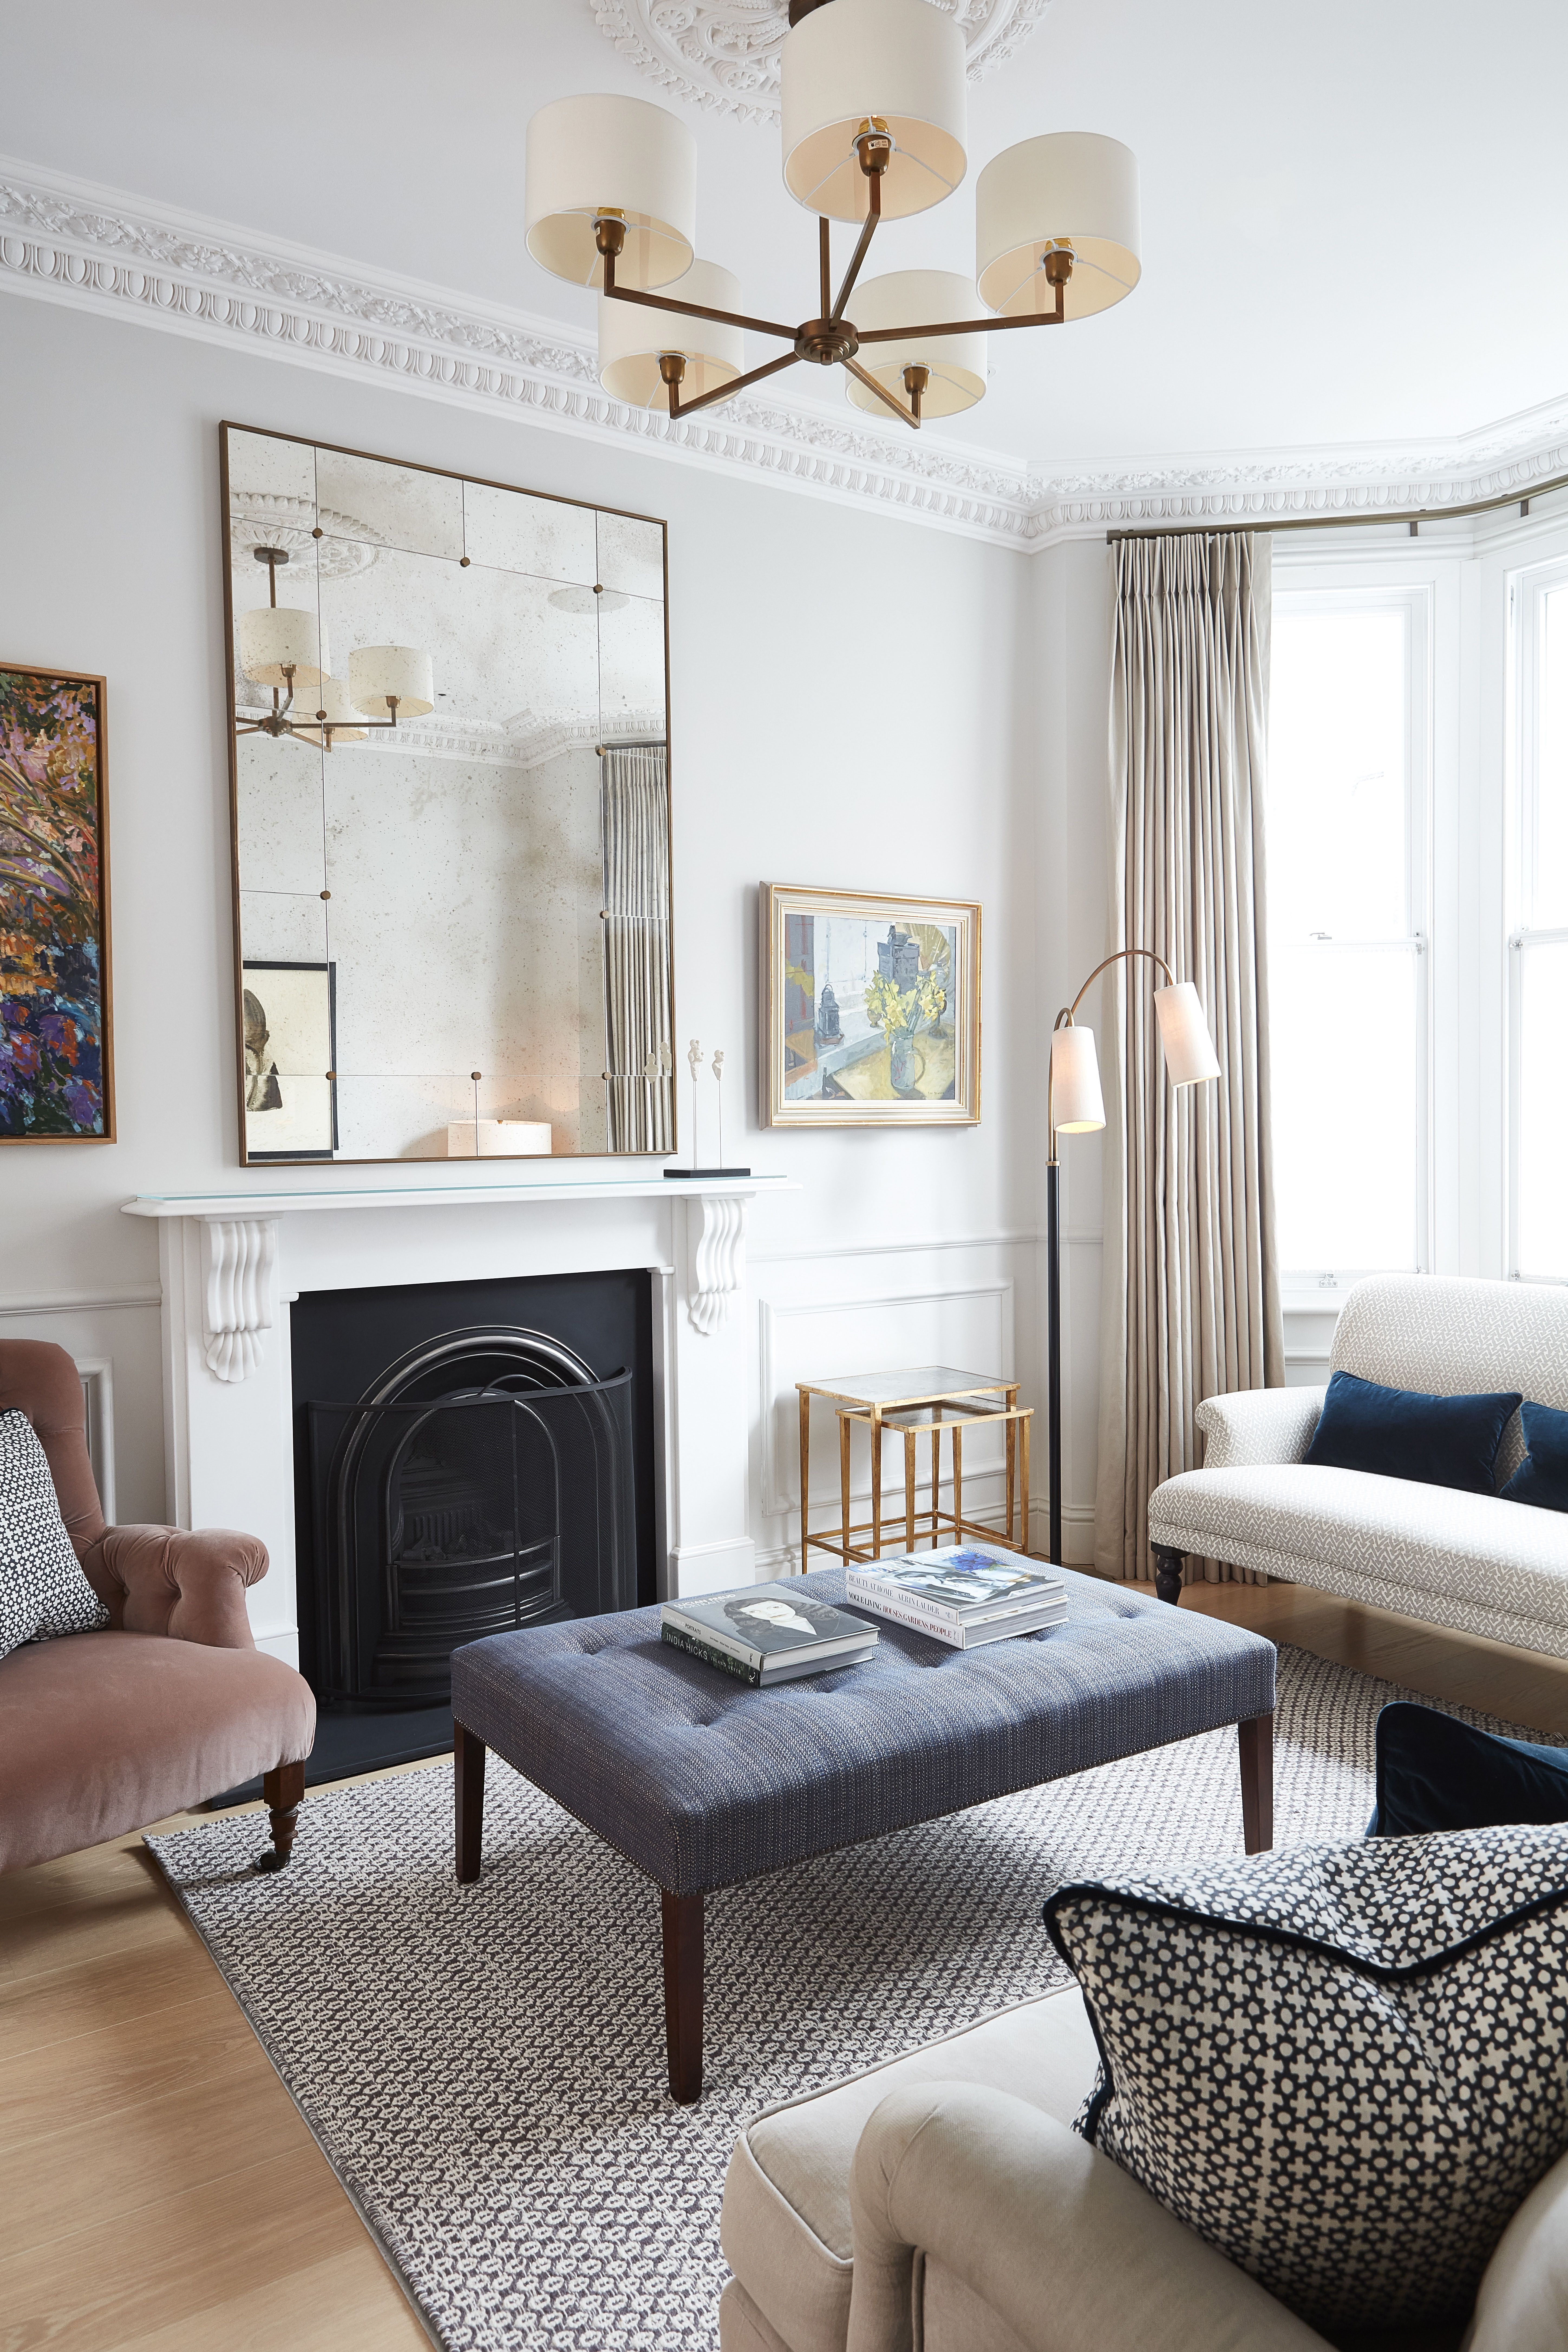 Anna hewitson design brings  fresh approach to interior by seamlessly balancing functionality with aesthetics also house  garden magazine uk houseandgarden on pinterest rh